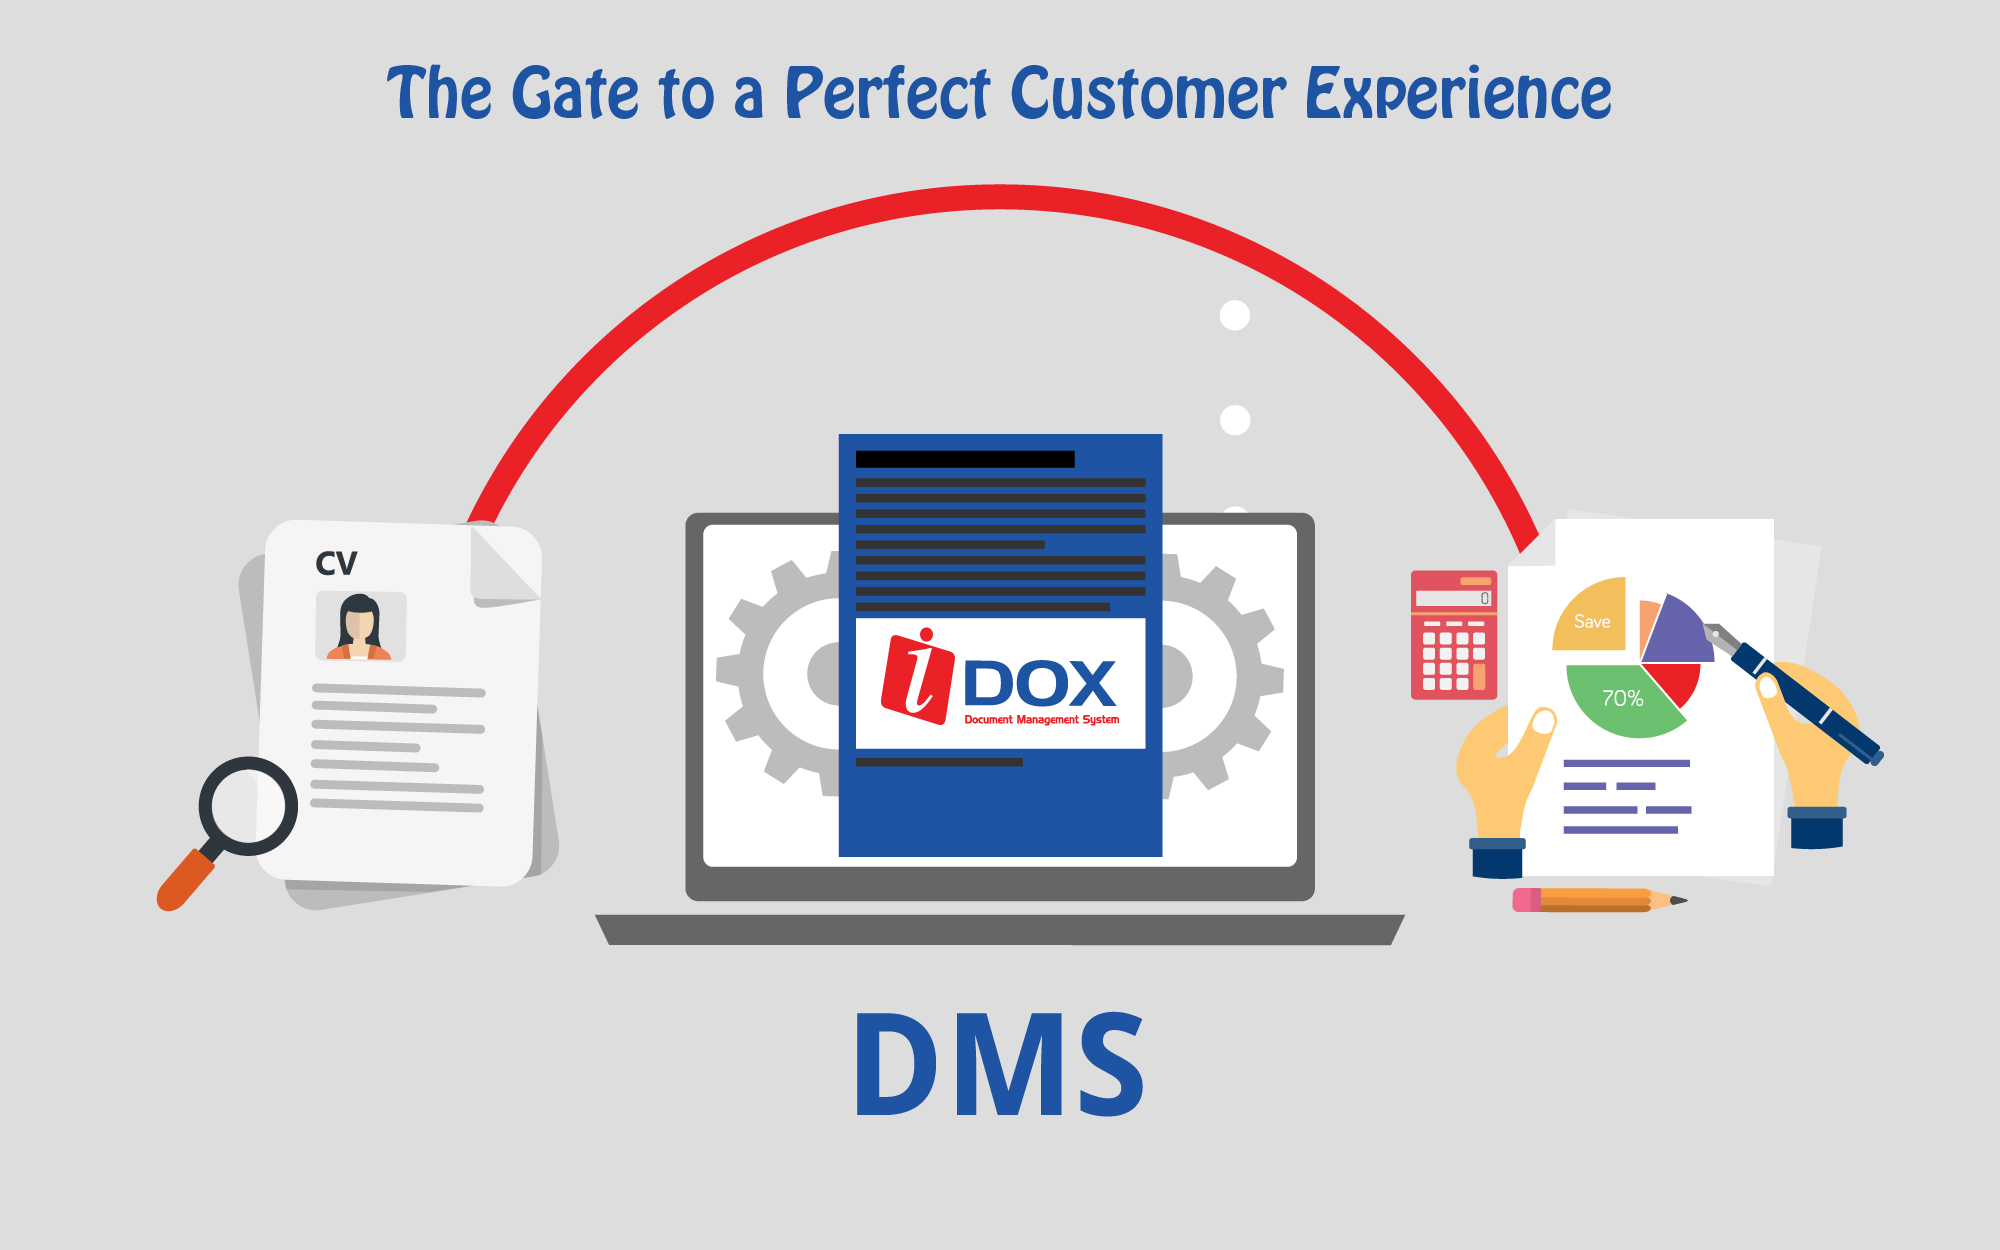 The Gate to a Perfect Customer Experience